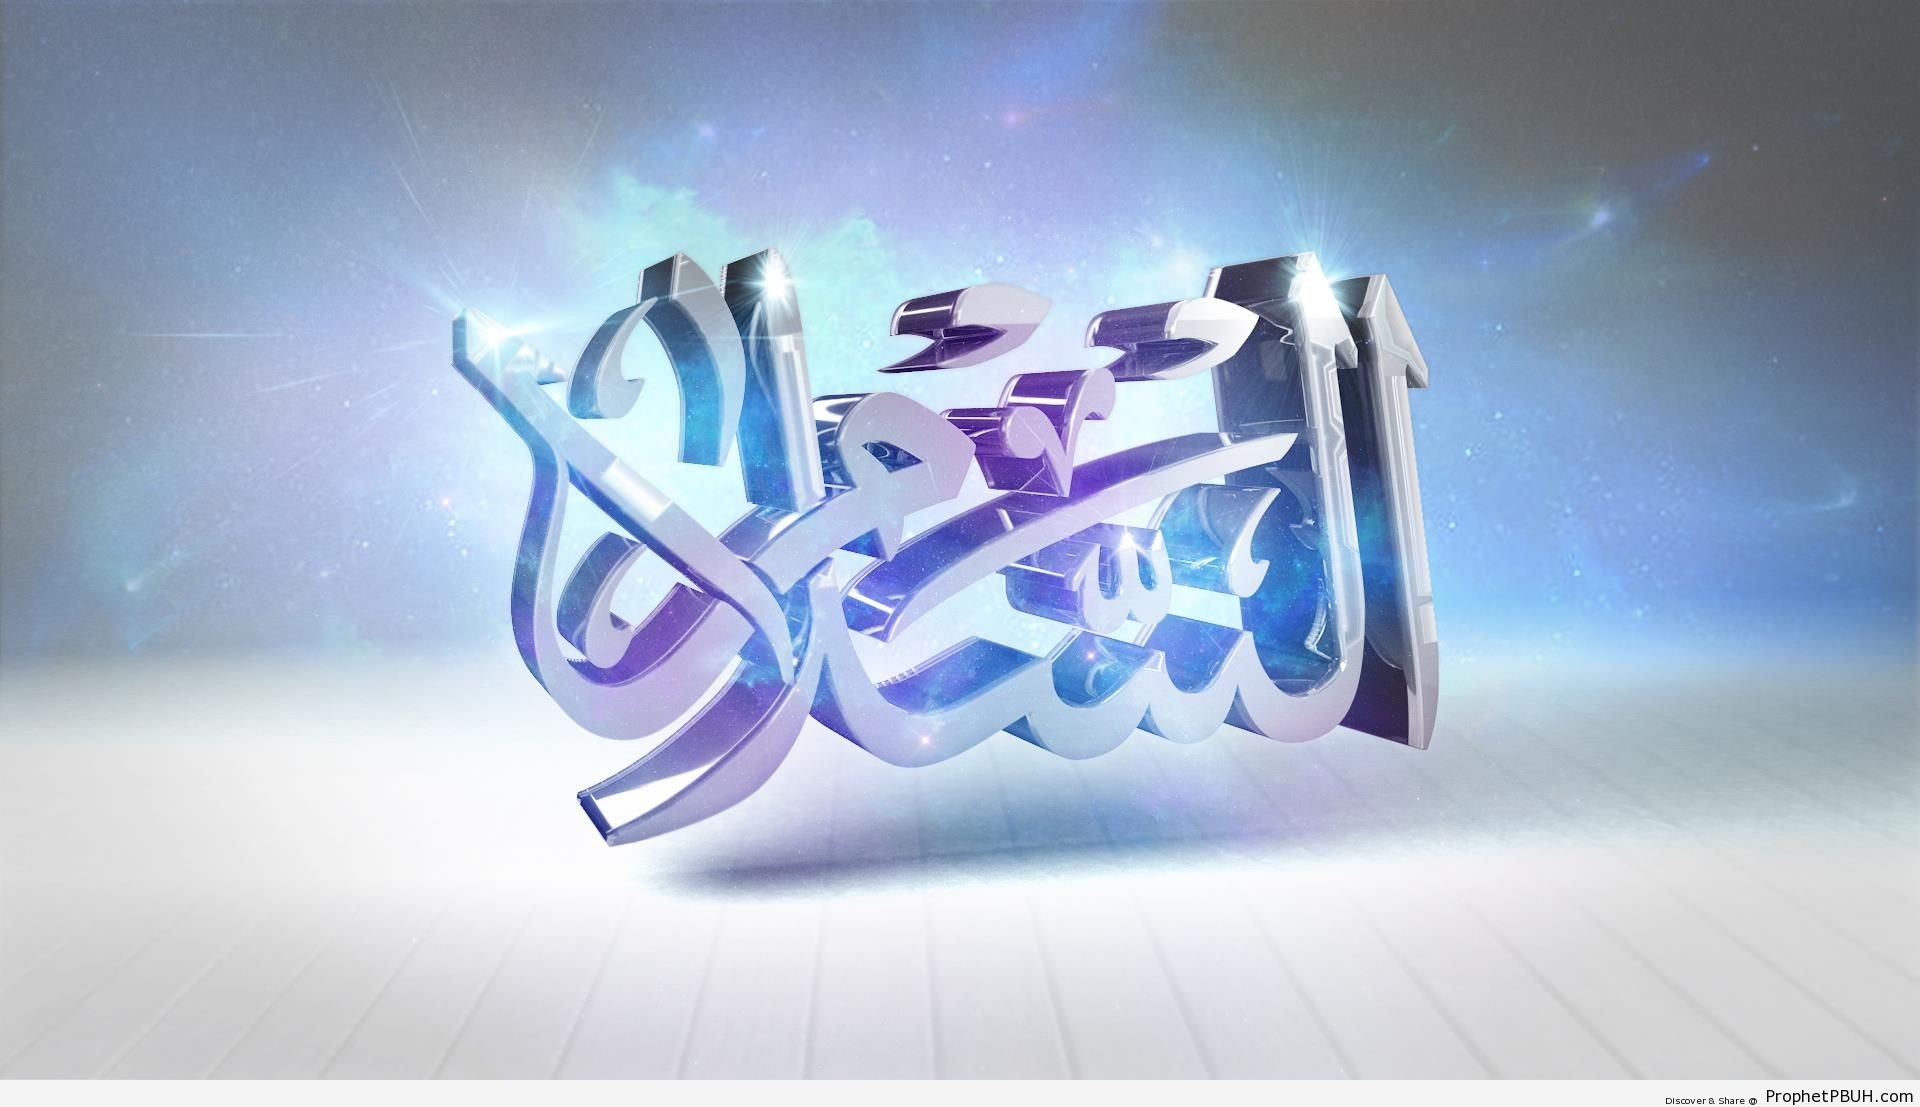 As-Salam [The Source of Peace and Salvation] Allah Attribute 3D Calligraphy HD Wallpaper [1920 x 1080] - 3D Calligraphy and Typography